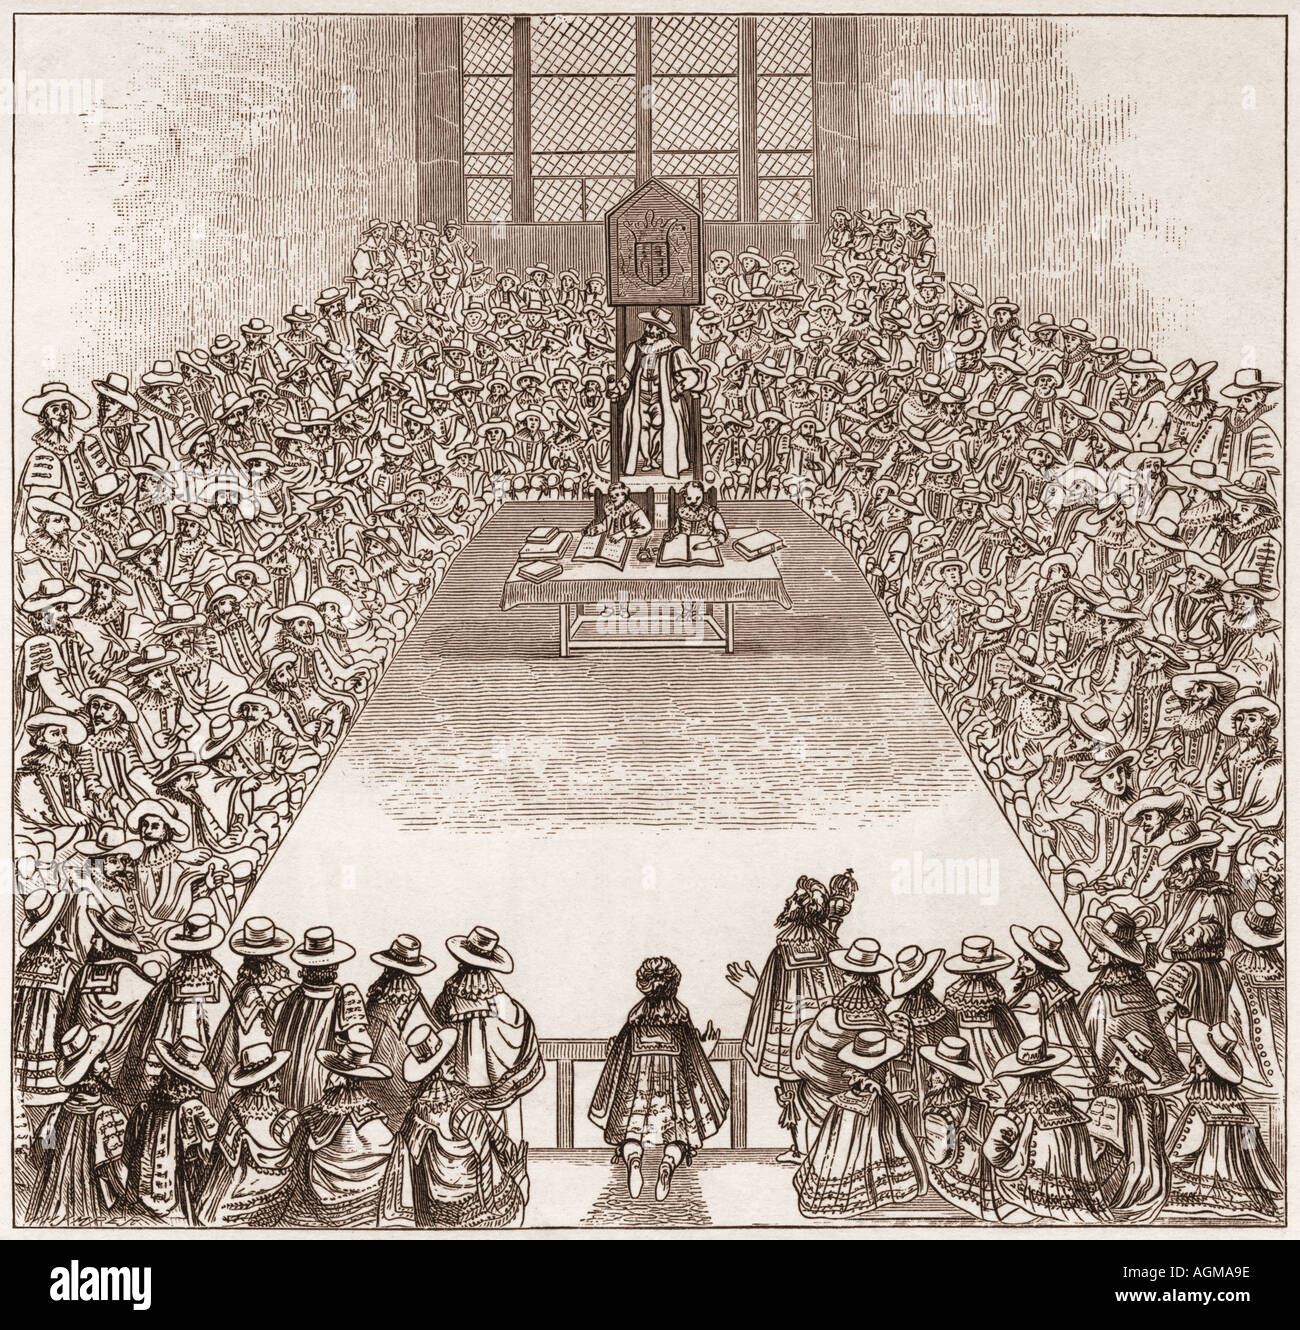 """development of english parliament during 17th century The english call the events of 1688 to 1689 the """"glorious revolution"""" because it replaced one king with another with a minimum of bloodshed and william and mary accepted the english throne from parliament recognizing supremacy of parliament."""